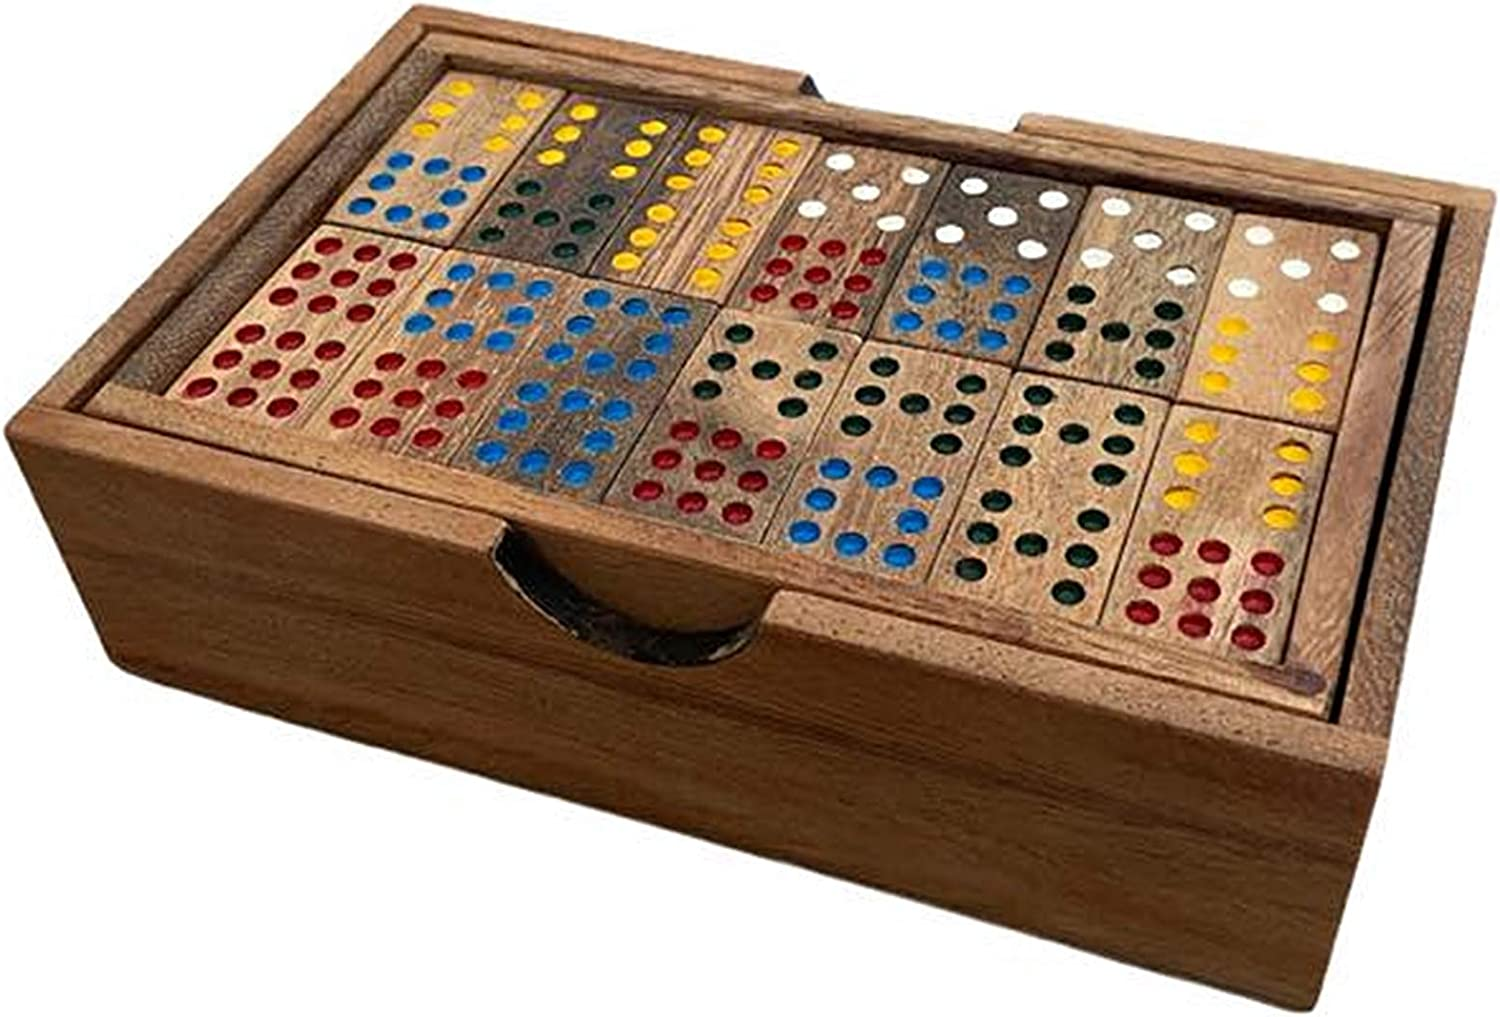 Wooden Dominoes Premium Set of 56 Handmade Rain Tree Wood Portable and Manageable Gift